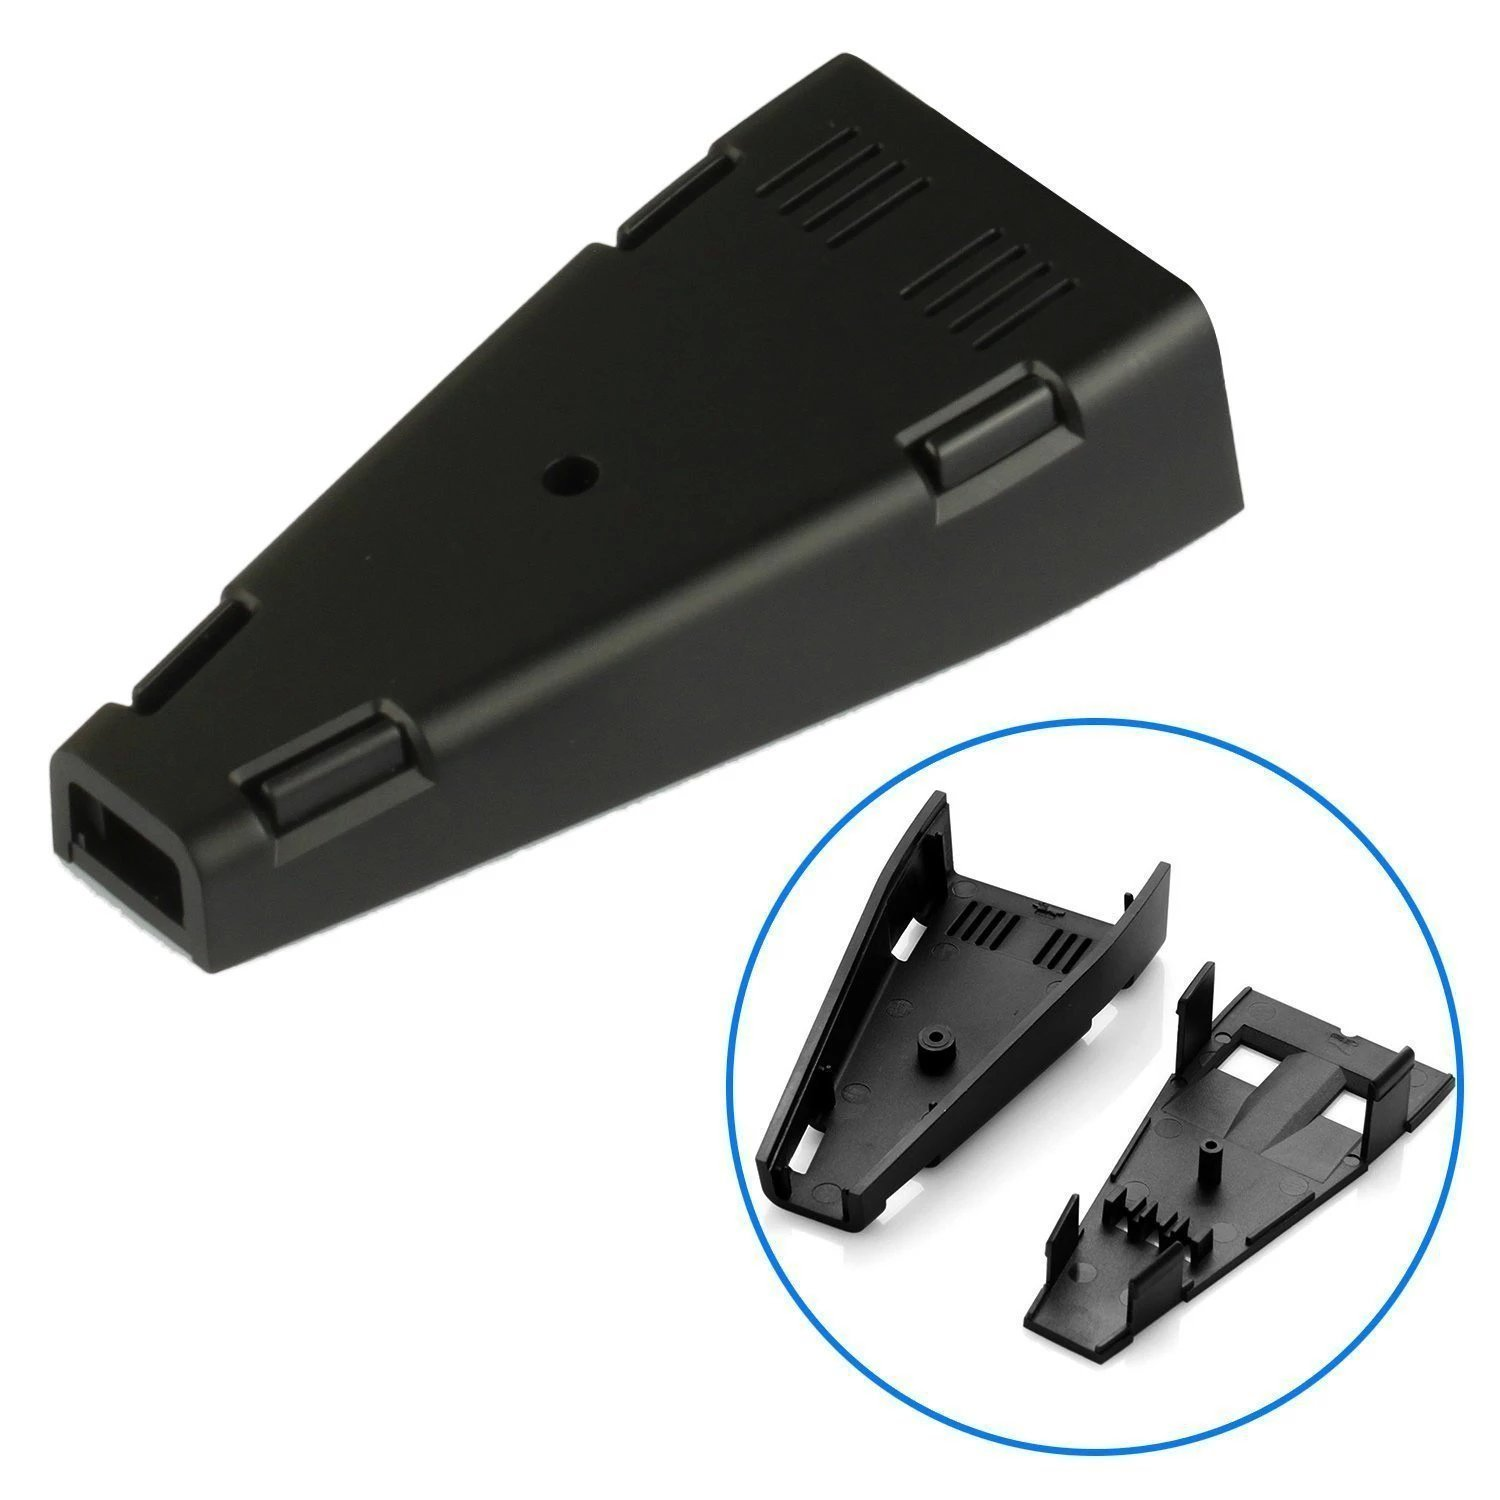 Street Guardian Cable Tray Cord Cover (For Above SG9665GC)